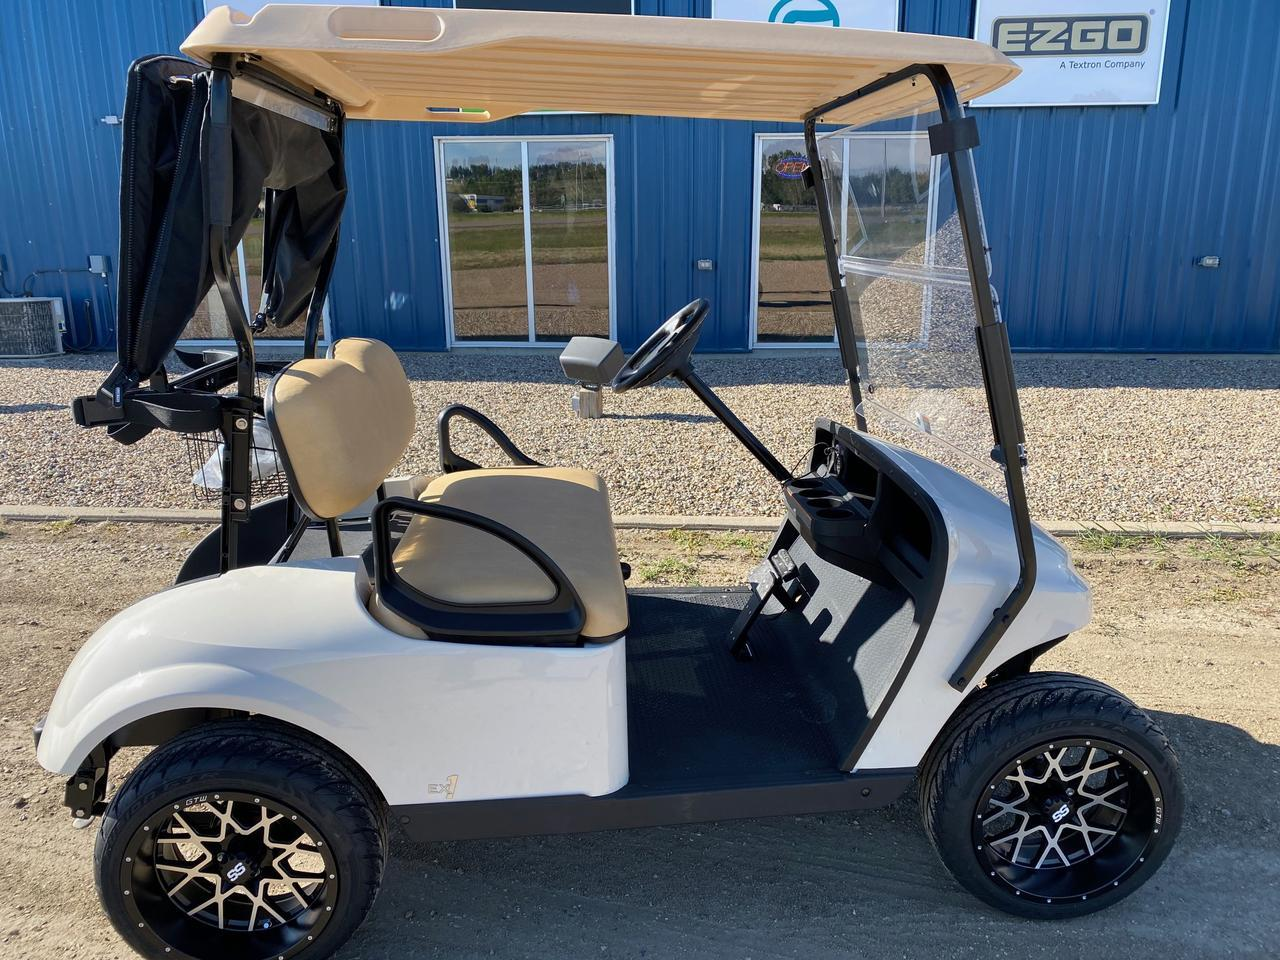 2021 EZGO TXT EX1 GAS CART